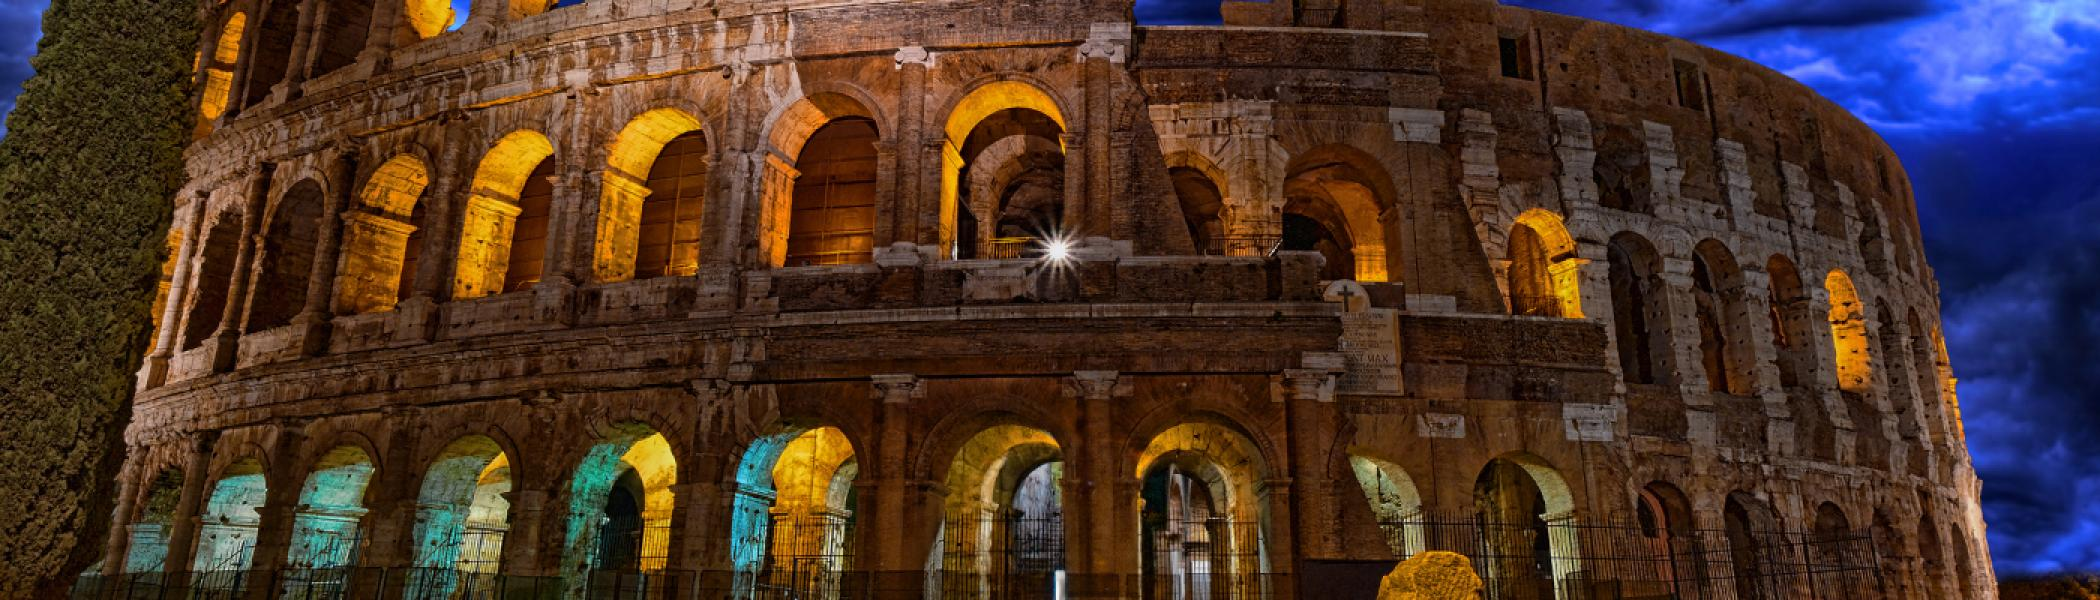 coliseum at night lit from the inside